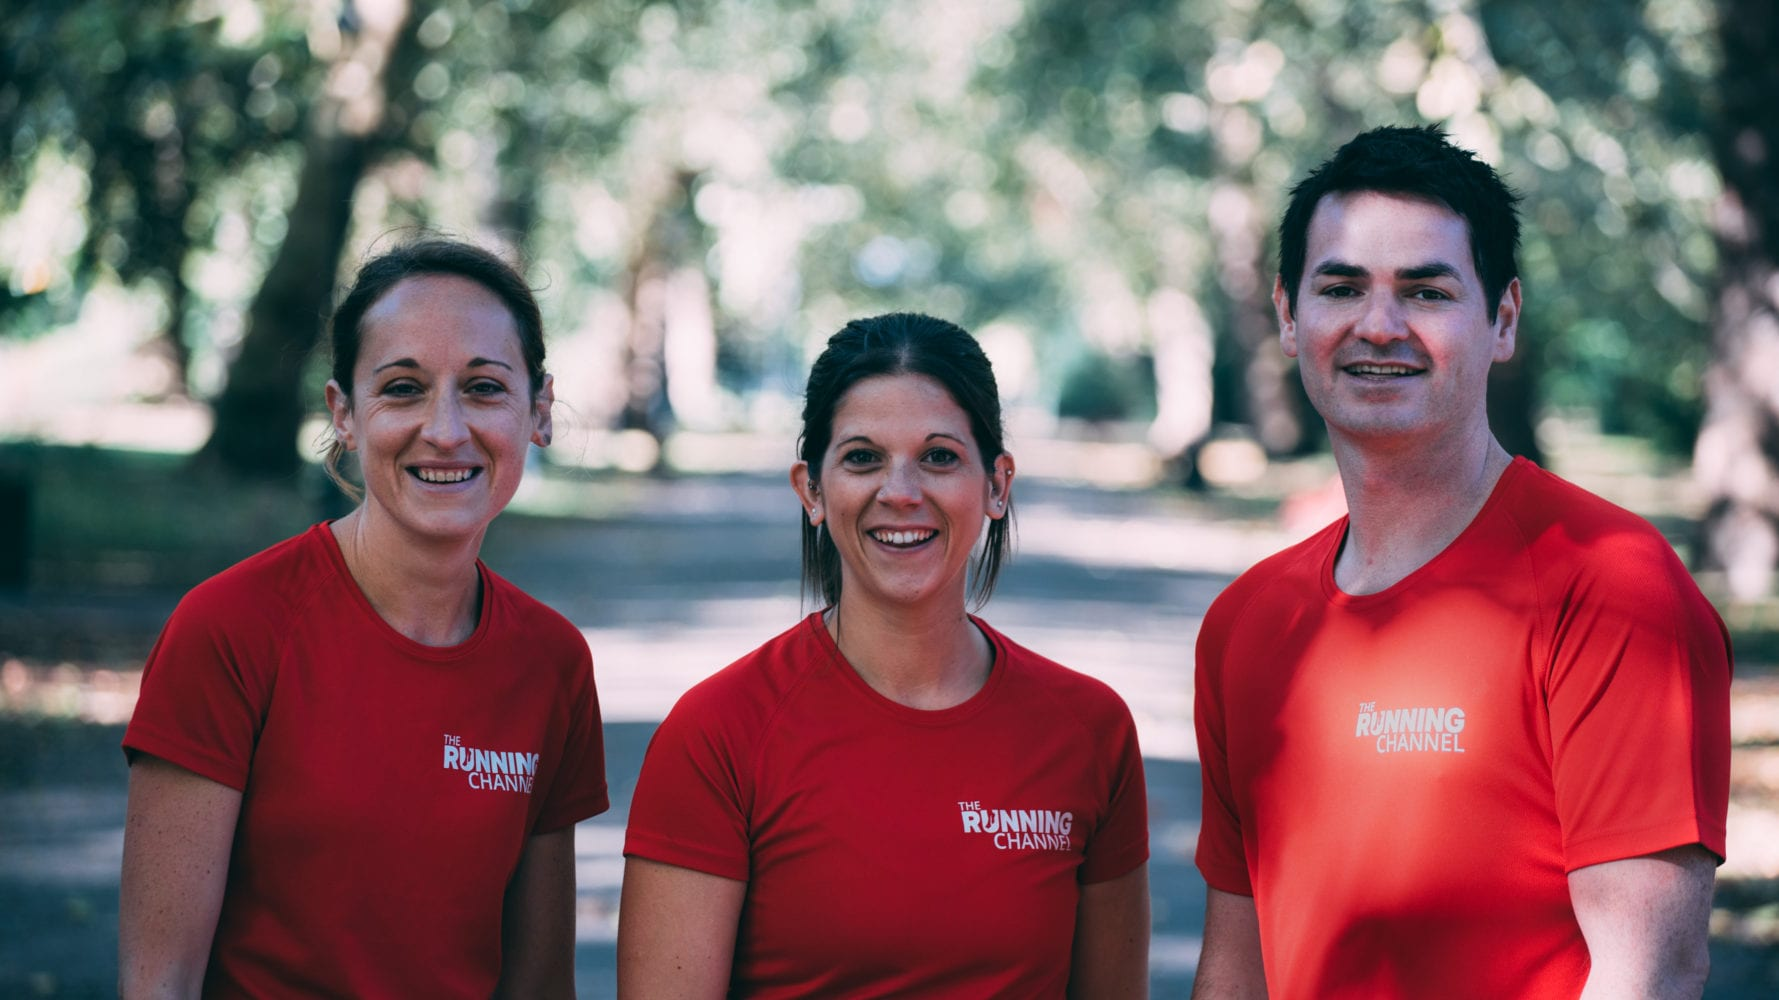 Creating a digital community for runners of all abilities – The Running Channel